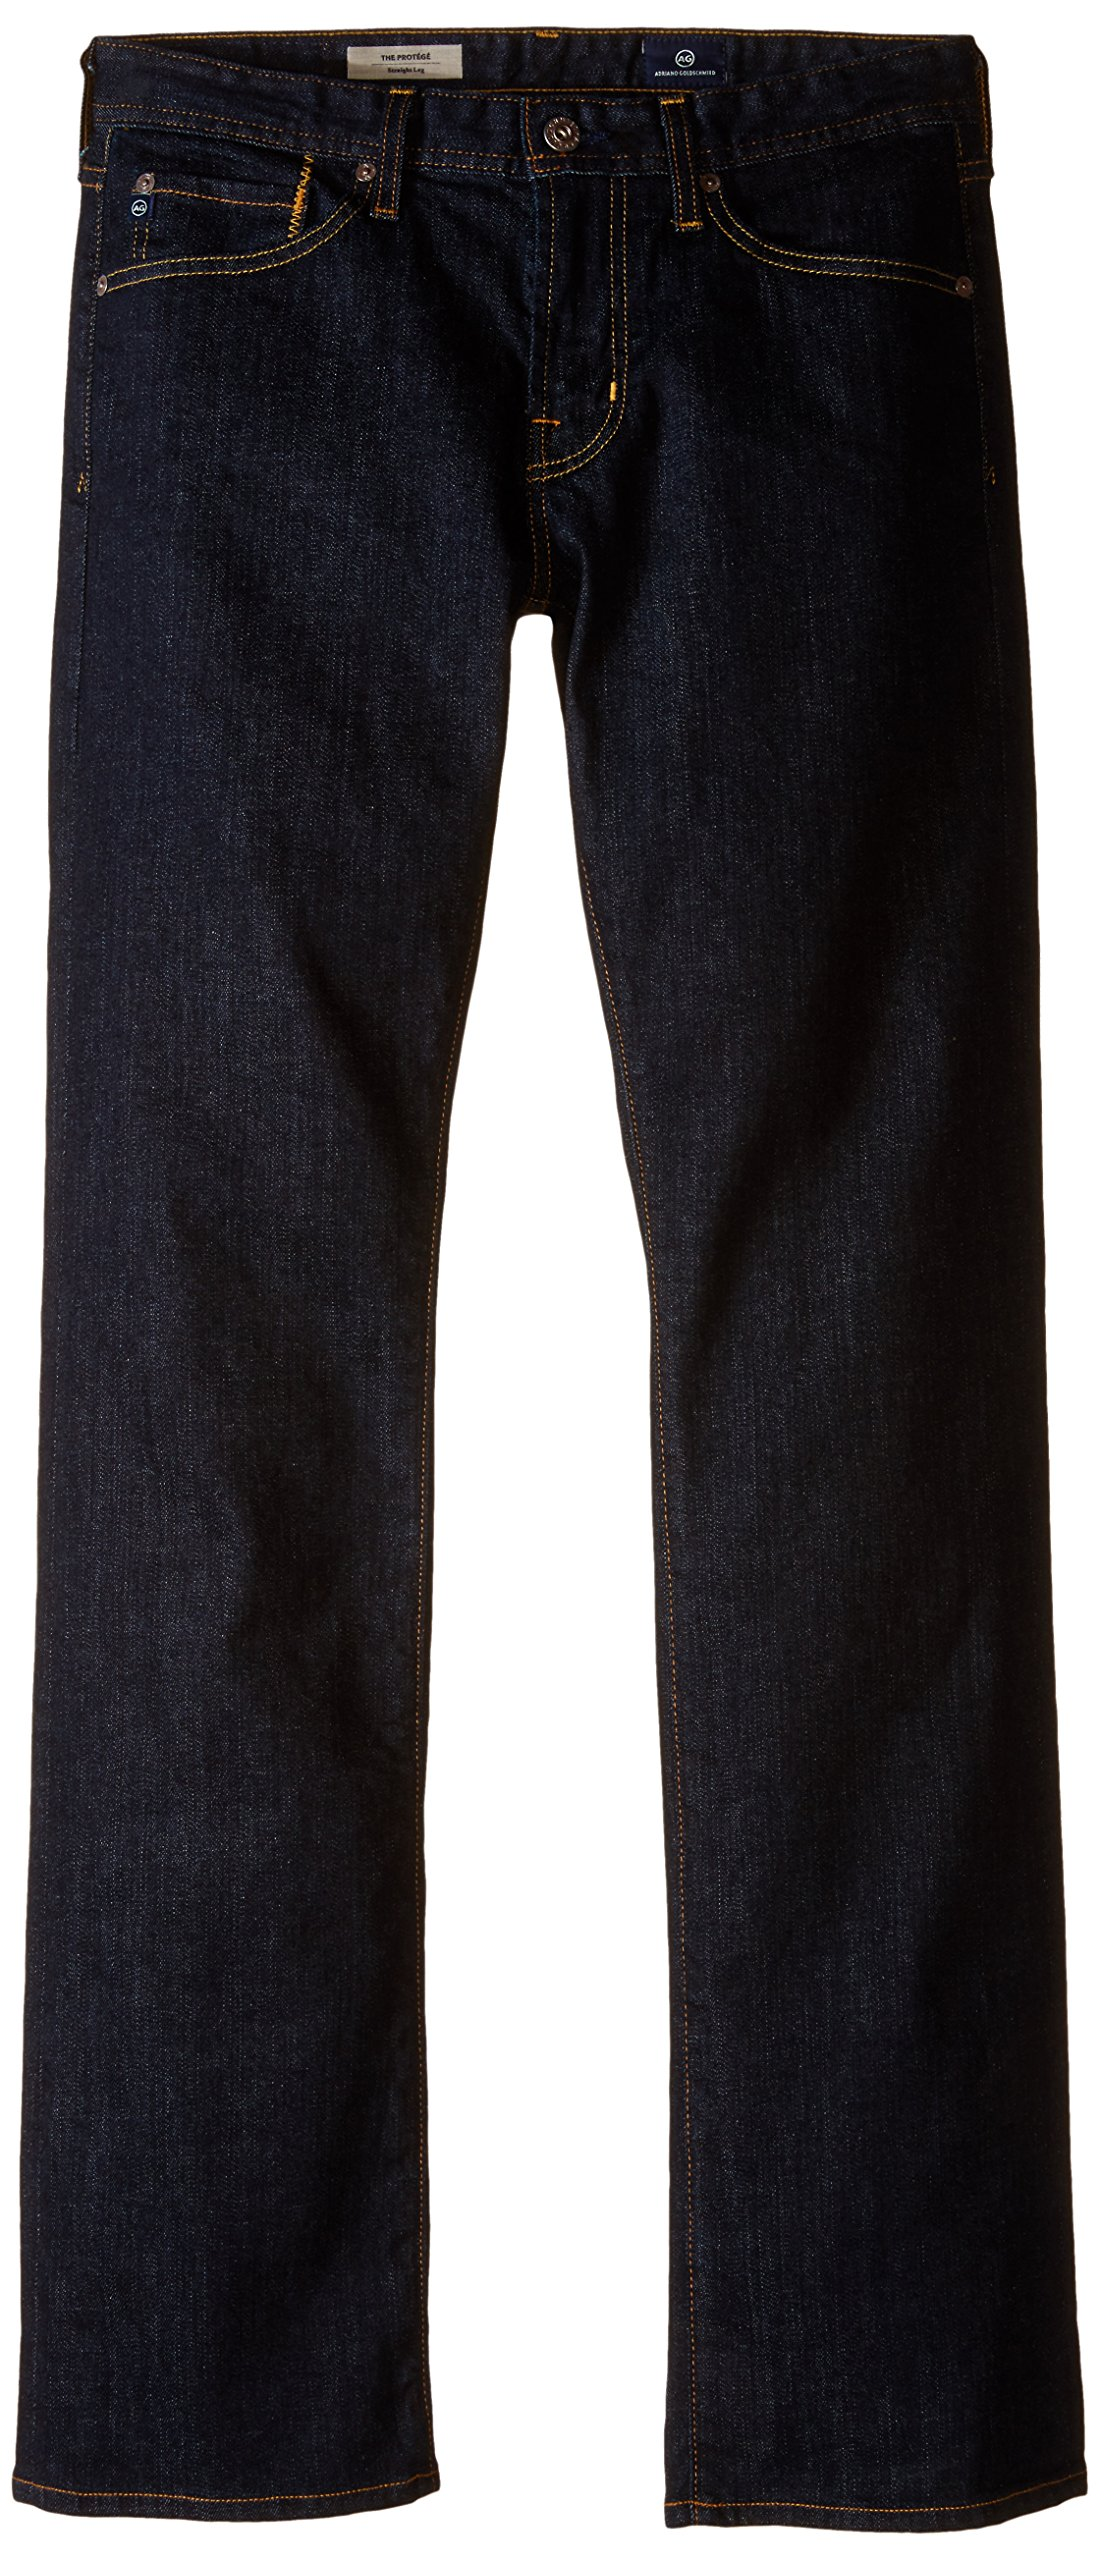 AG Adriano Goldschmied Men's The Protege Straight-Leg Jean In Jack Wash, Jack Wash, 40